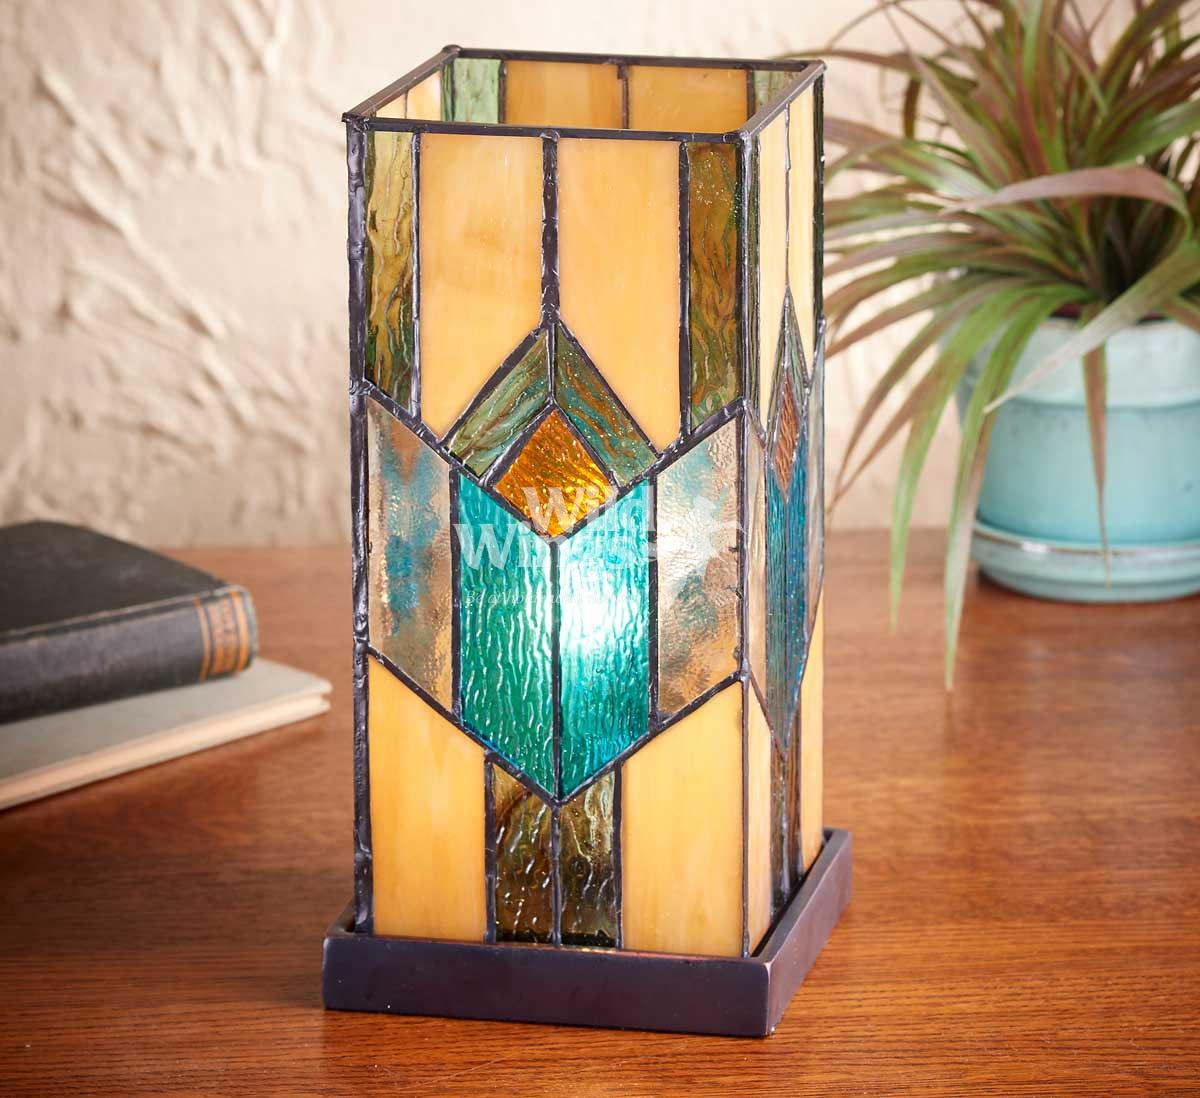 5607718601: Seaglass Stained Glass Hurricane Lamp